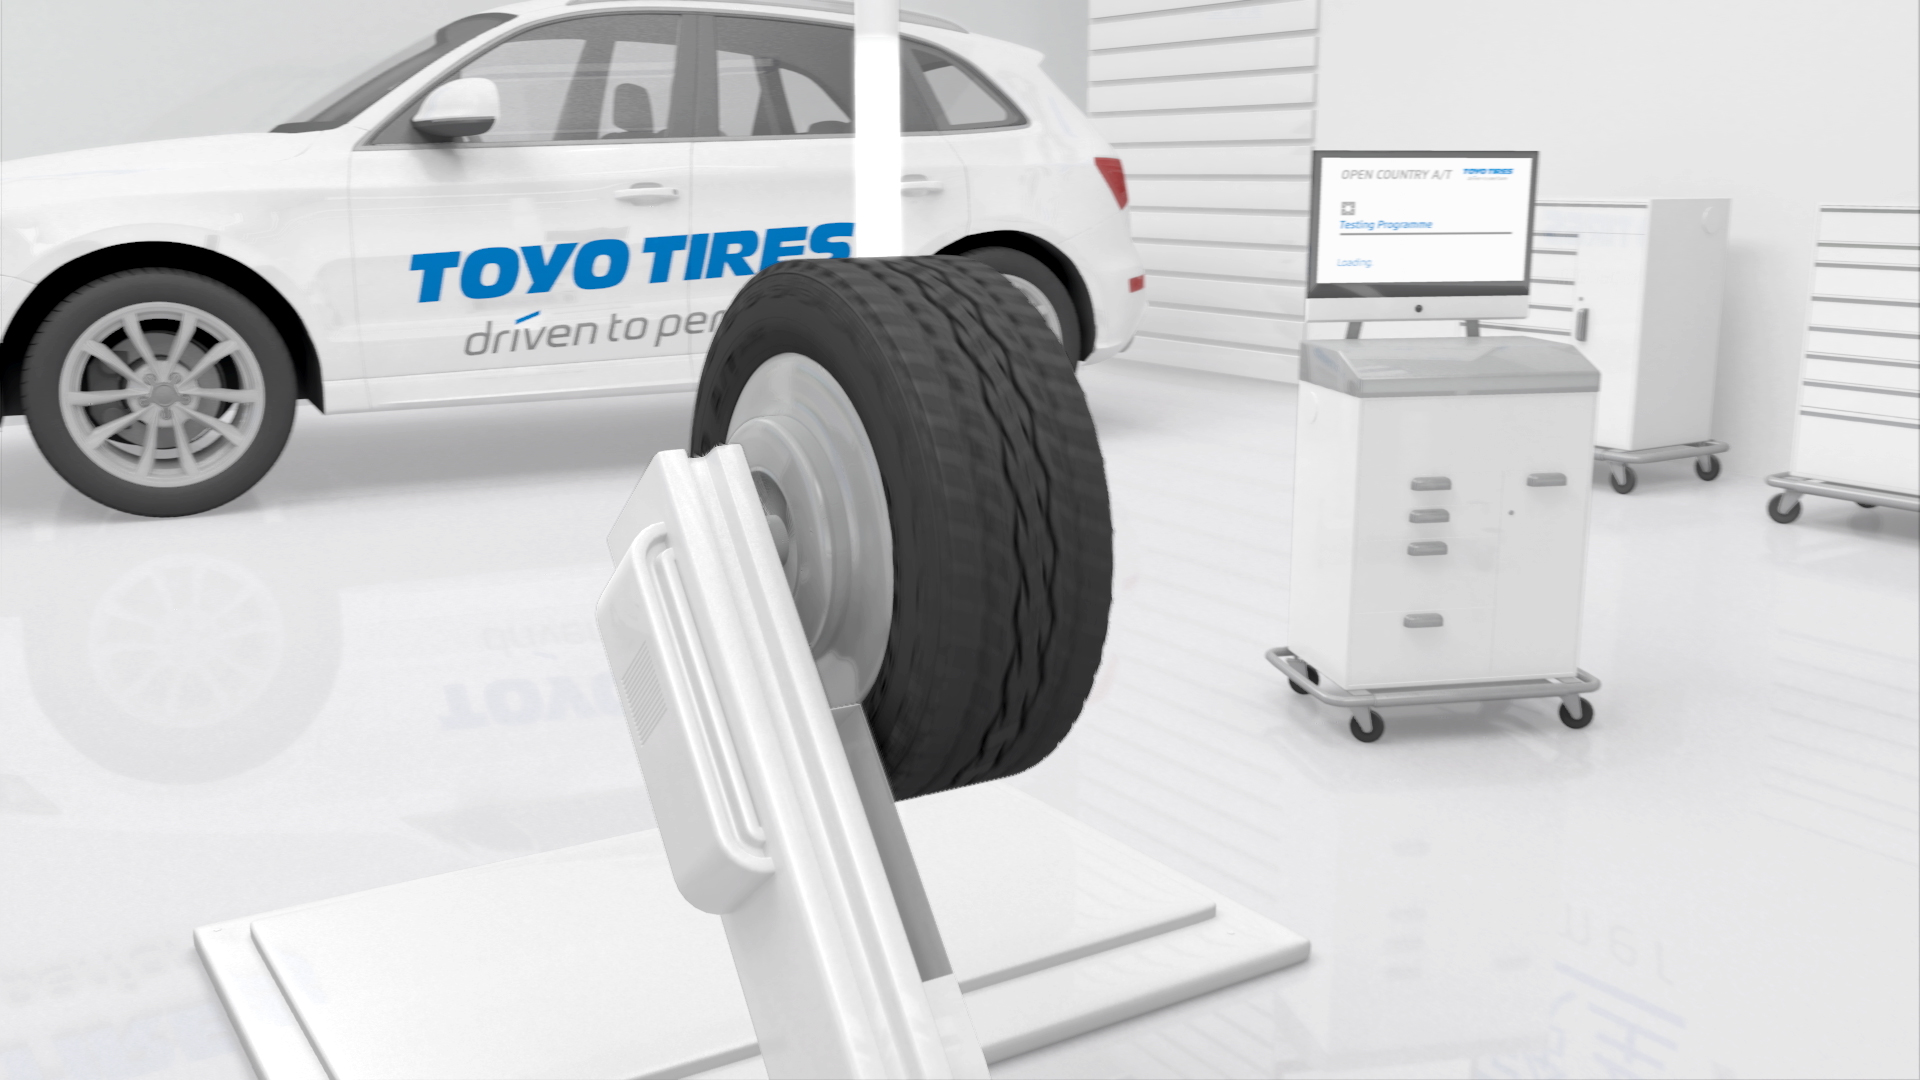 04_toyo-tires-open-country